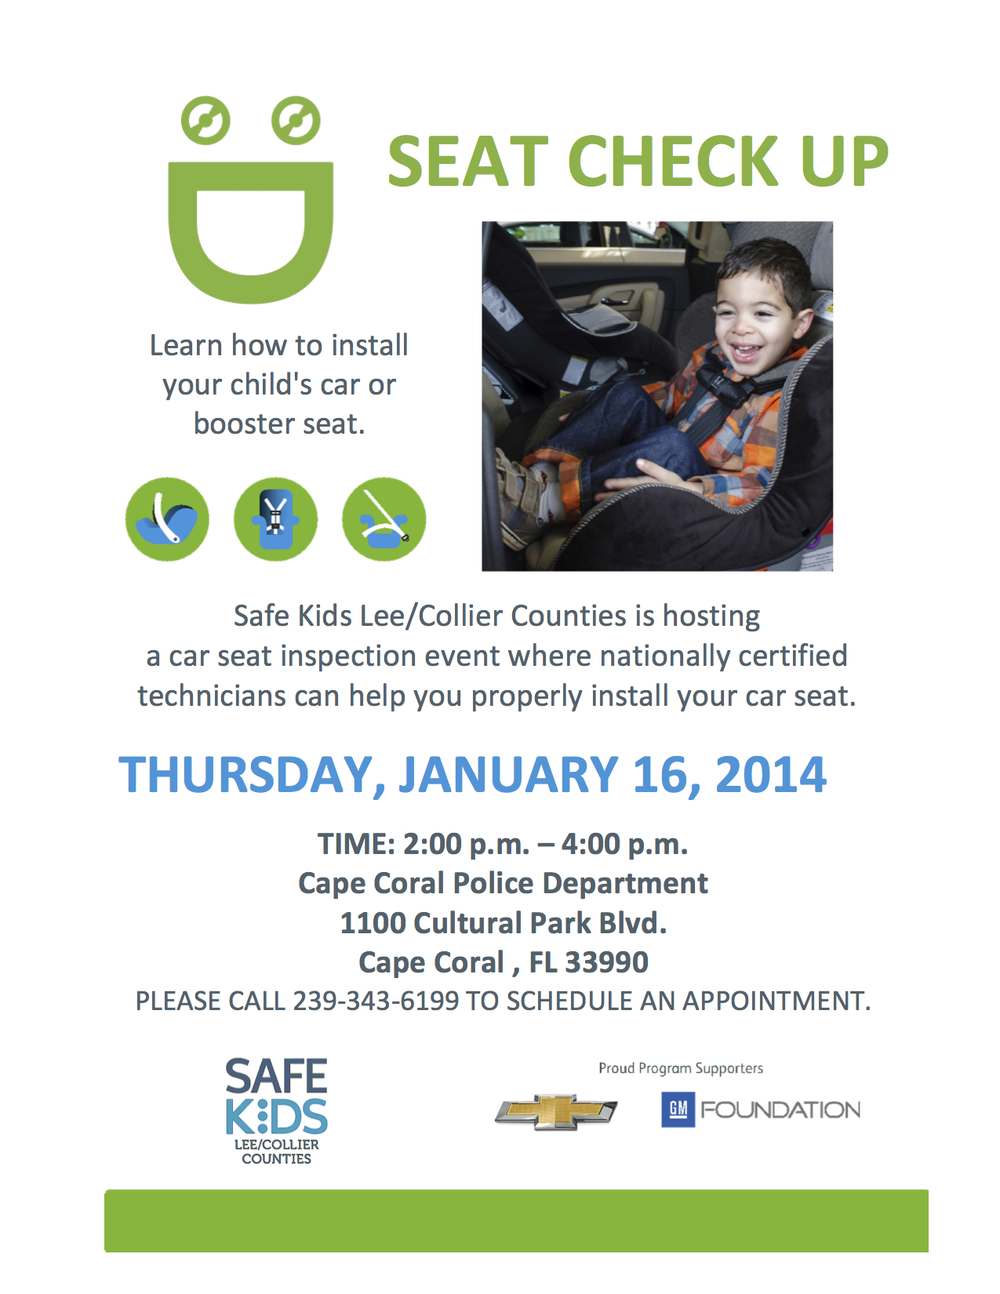 Cape Coral Police Department Hosting Car Seat Inspection Event on ...